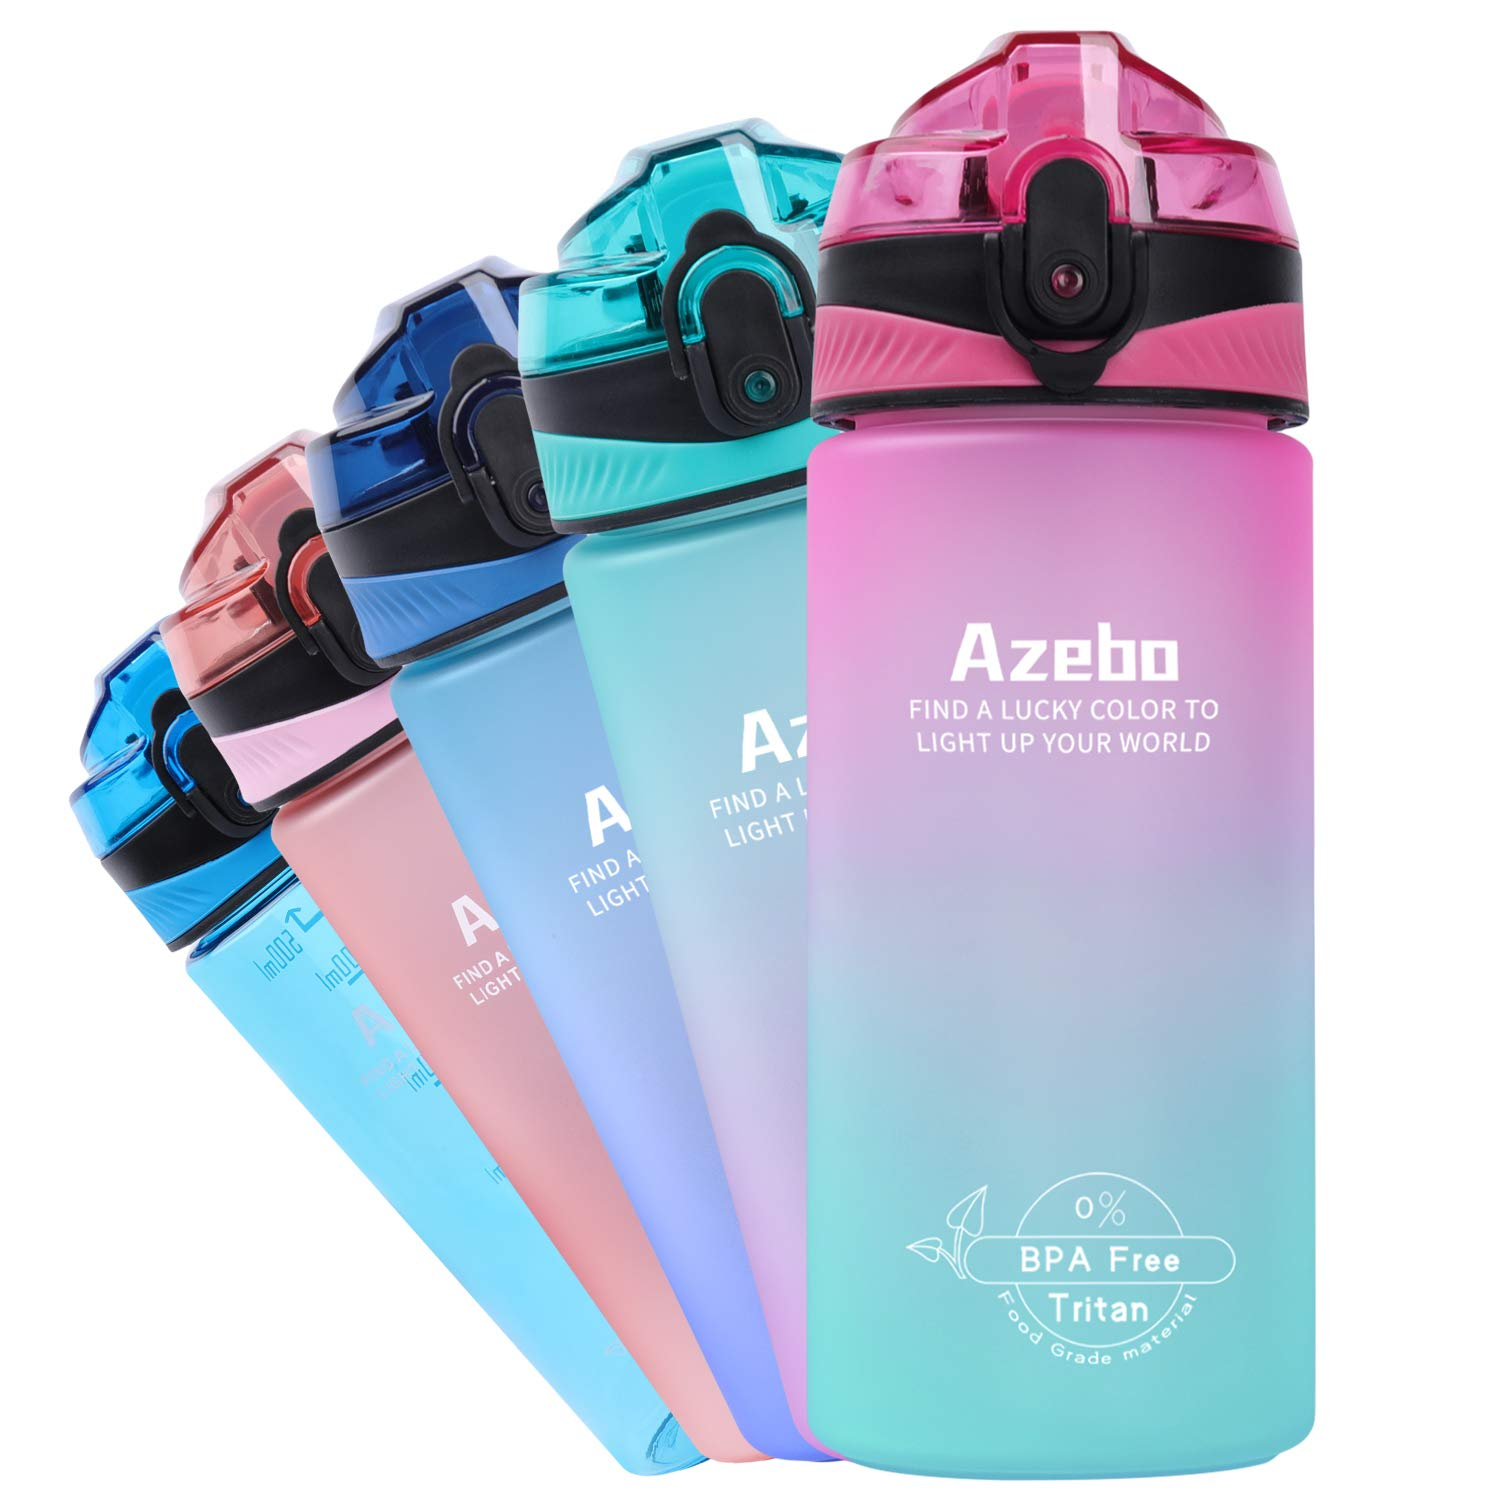 Azebo 18oz Small Water Bottle with Time Marker To Drink & Removable Strainer Infuser Tritan BPA Free Non-Toxic 500ml for Fitness Sports Outdoors and Office Pink/Mint Green Gradient